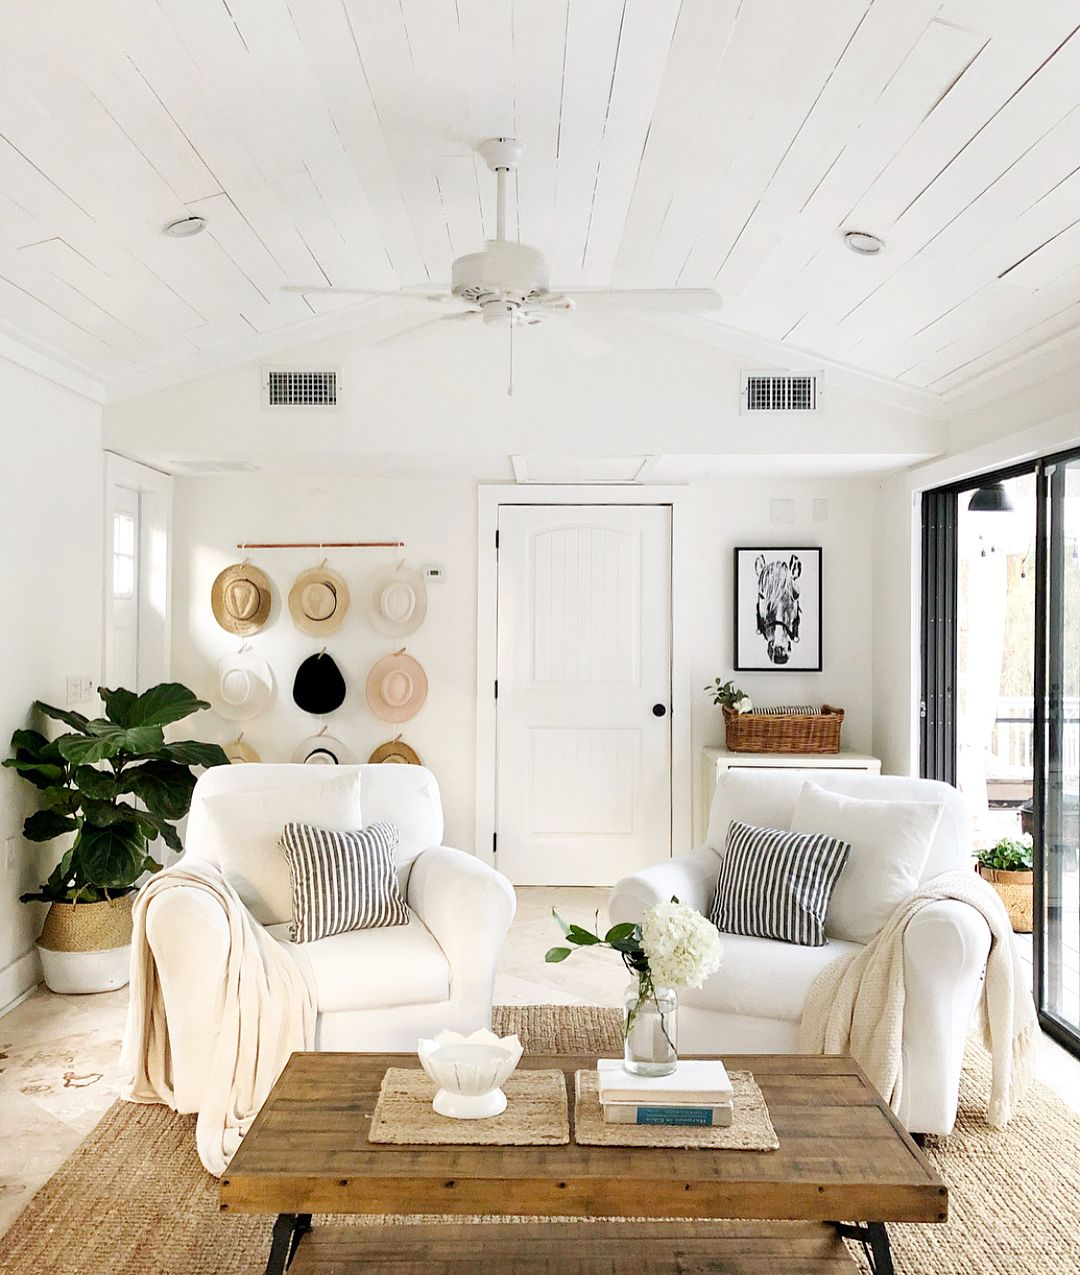 rooms for rent blog also paris vacation house rental elegant and airy all white living rh pinterest